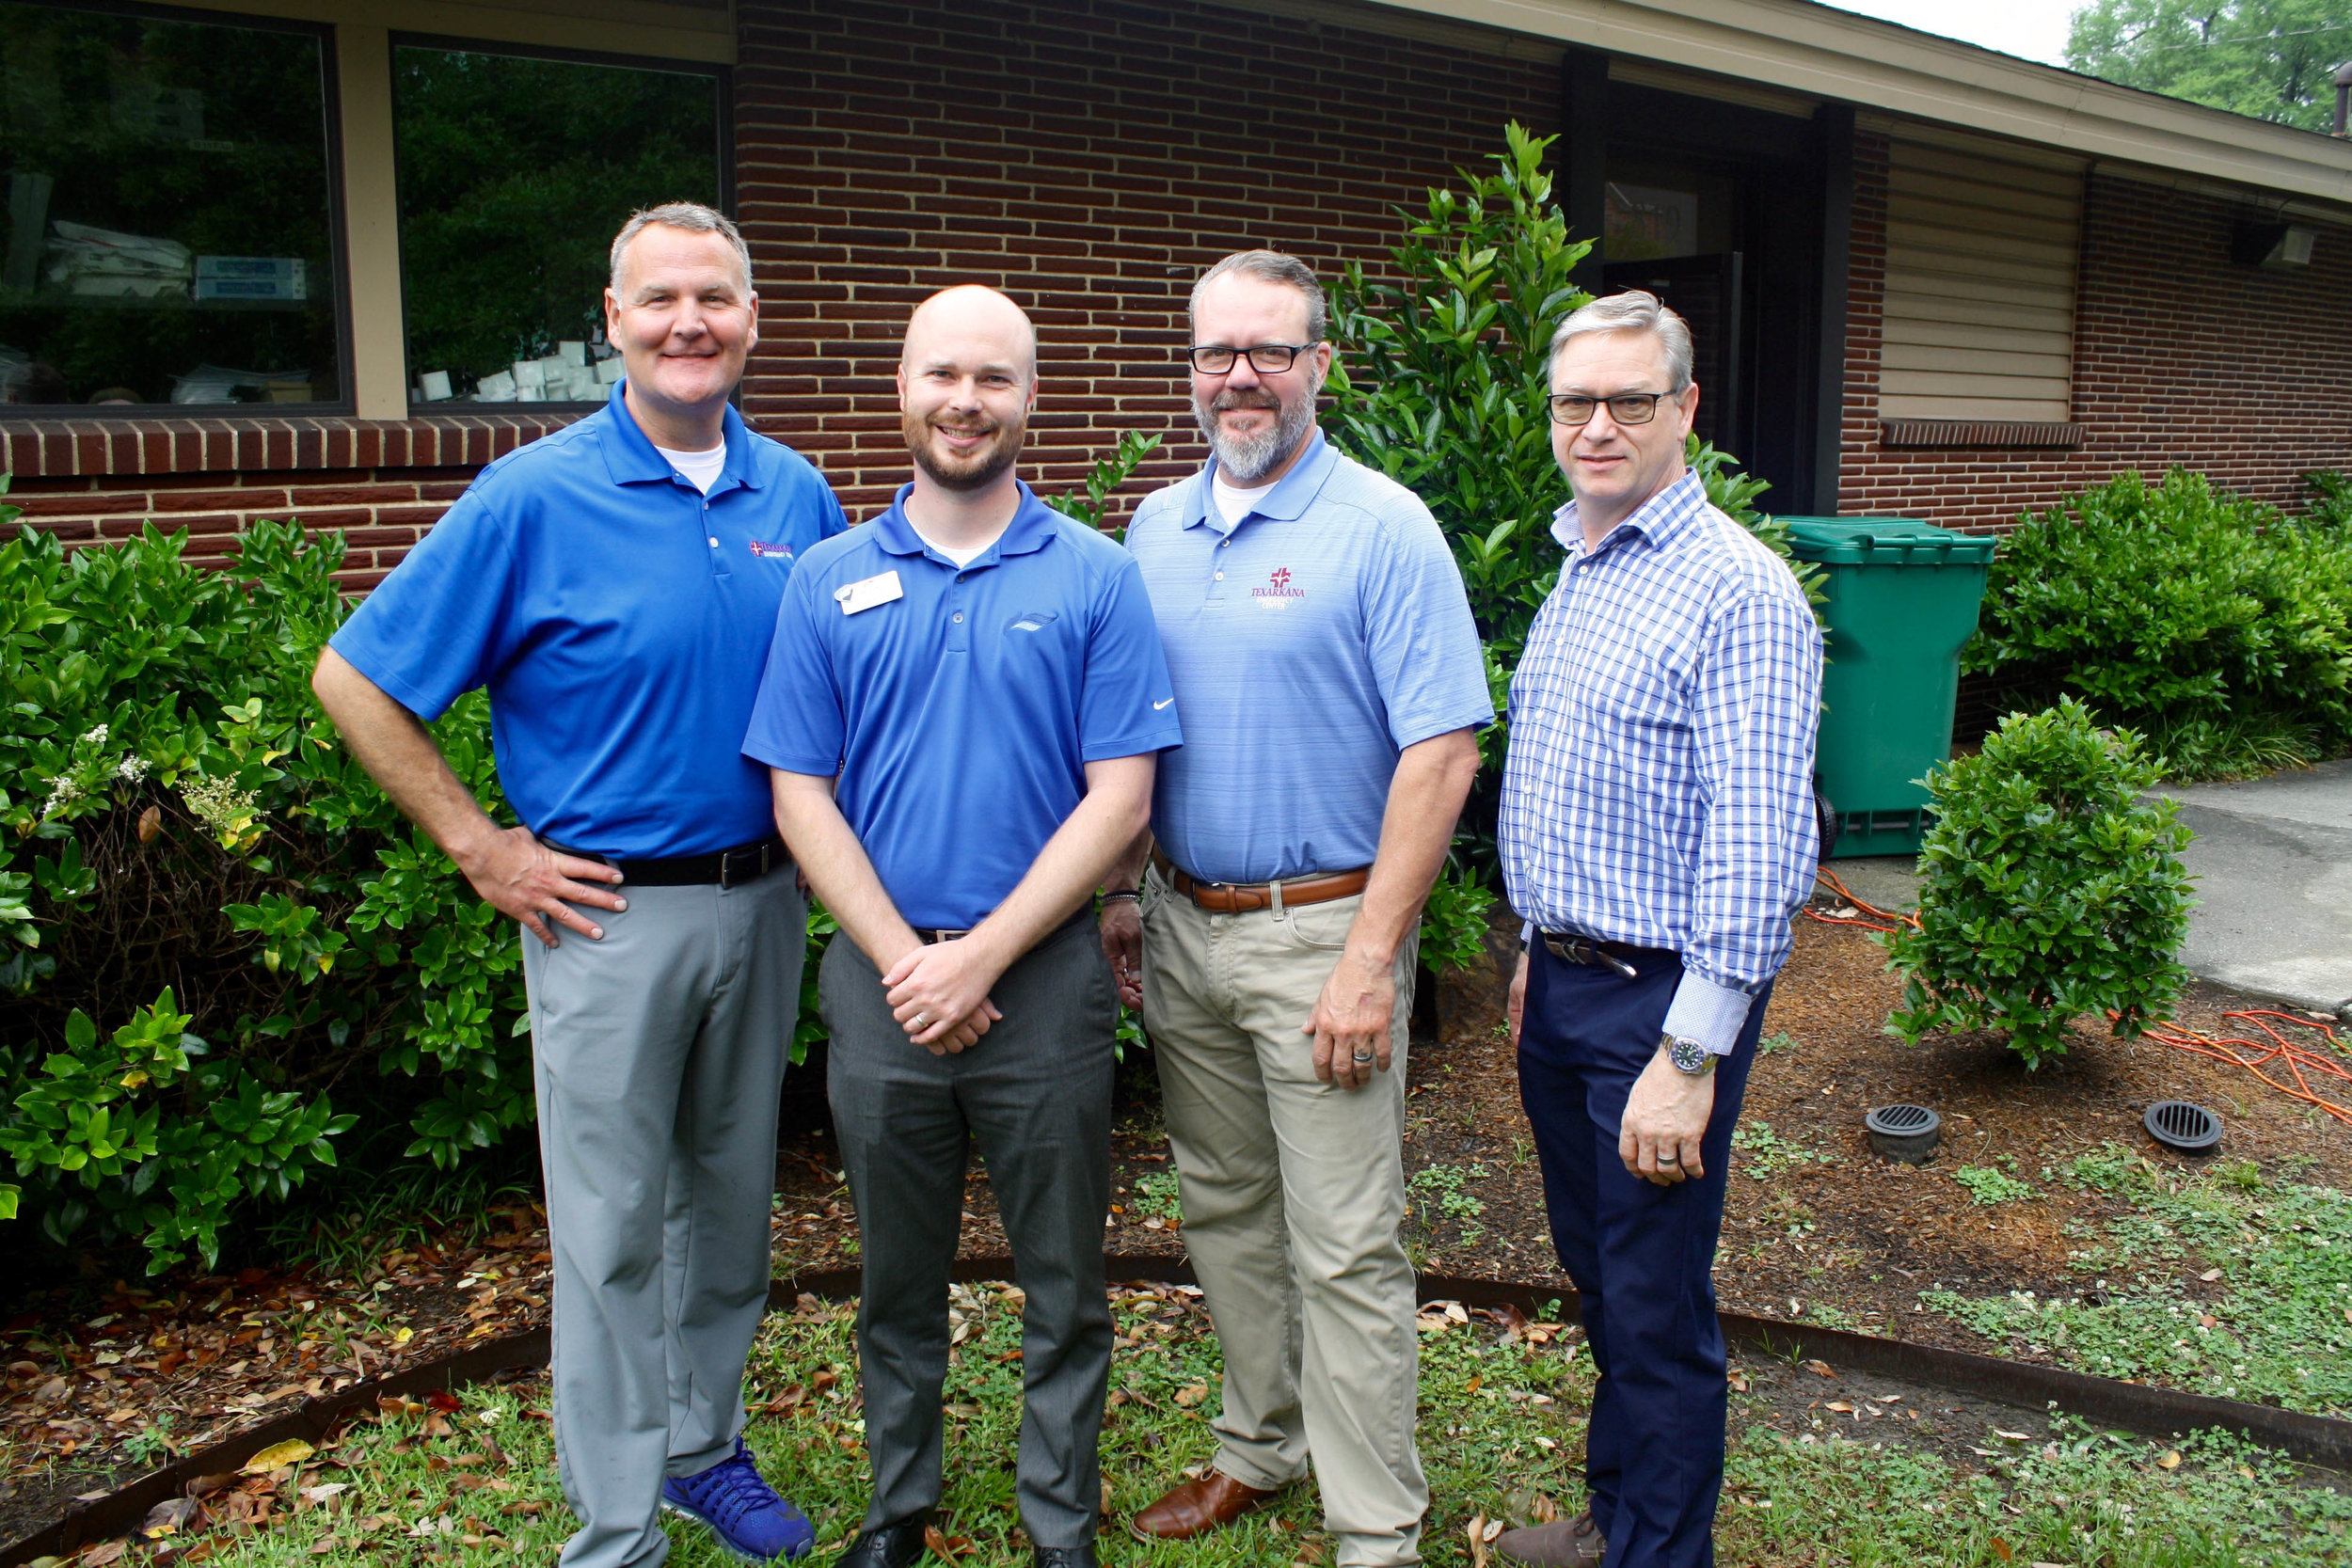 Dr. Matt Young, Kevin Avery, Dr. Erik Jacobsen and Tim O'Neal